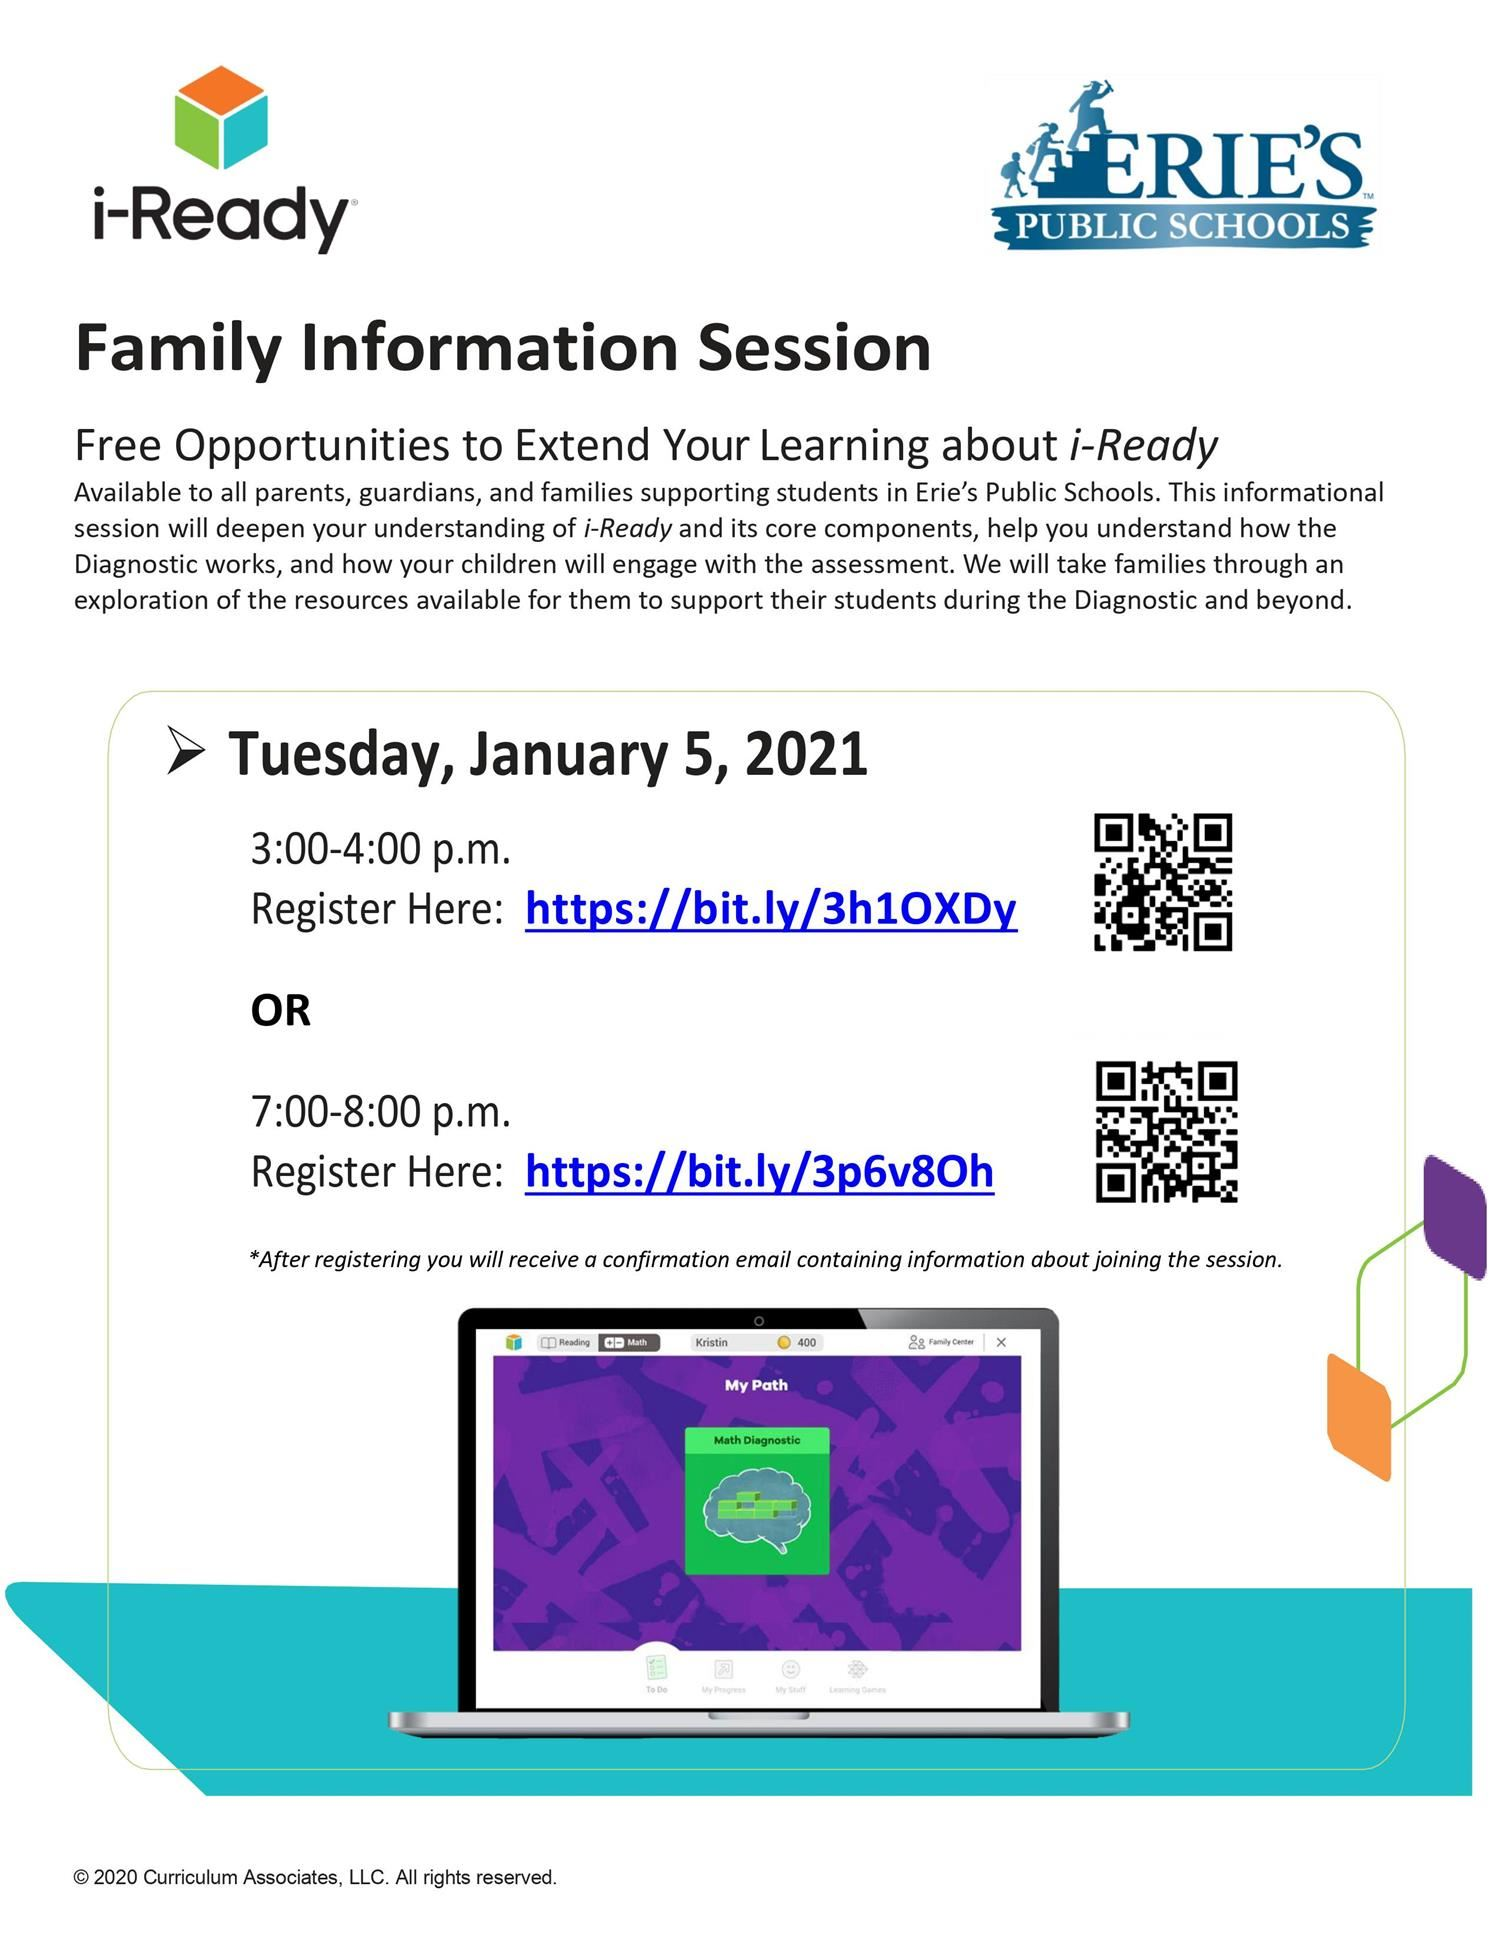 iready family info sessions